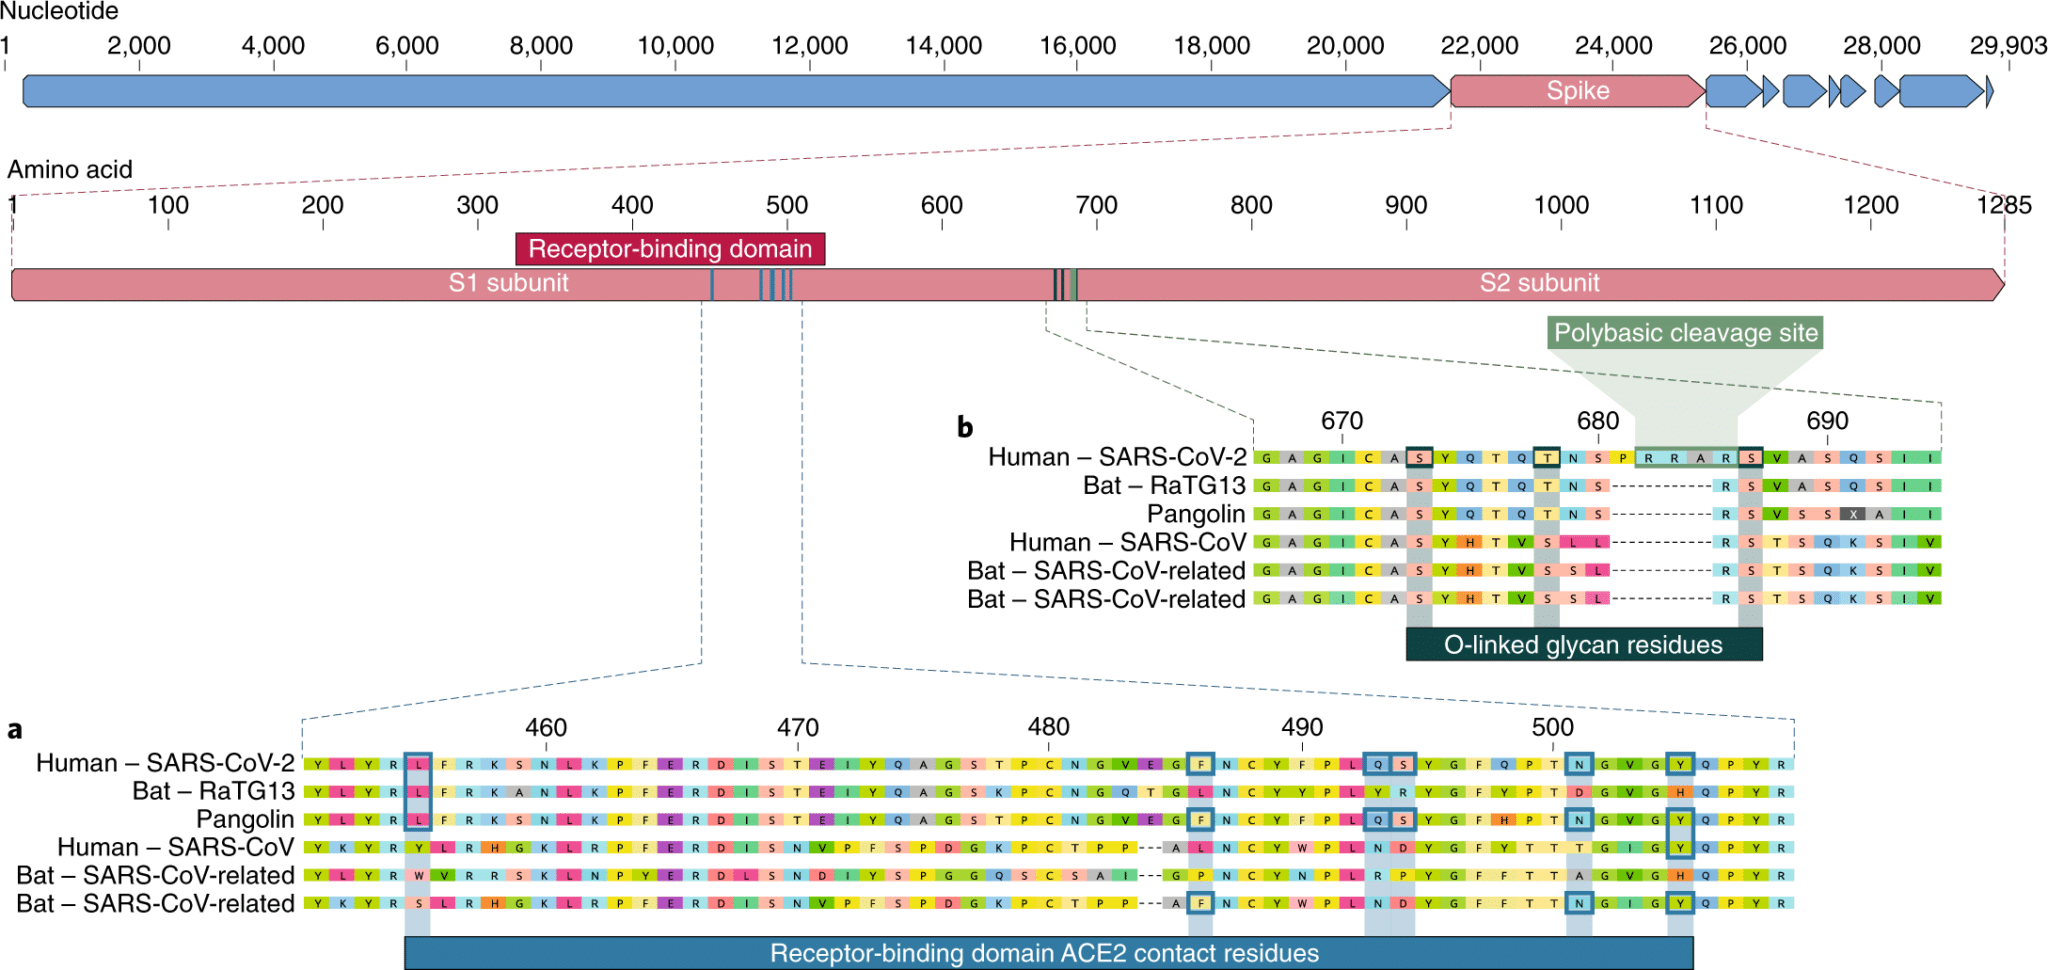 a, Mutations in contact residues of the SARS-CoV-2 spike protein. The spike protein of SARS-CoV-2 (red bar at top) was aligned against the most closely related SARS-CoV-like coronaviruses and SARS-CoV itself. Key residues in the spike protein that make contact to the ACE2 receptor are marked with blue boxes in both SARS-CoV-2 and related viruses, including SARS-CoV (Urbani strain). b, Acquisition of polybasic cleavage site and O-linked glycans. Both the polybasic cleavage site and the three adjacent predicted O-linked glycans are unique to SARS-CoV-2 and were not previously seen in lineage B betacoronaviruses. Sequences shown are from NCBI GenBank, accession codes MN908947, MN996532, AY278741, KY417146 and MK211376. The pangolin coronavirus sequences are a consensus generated from SRR10168377 and SRR10168378 (NCBI BioProject PRJNA573298)29,30.